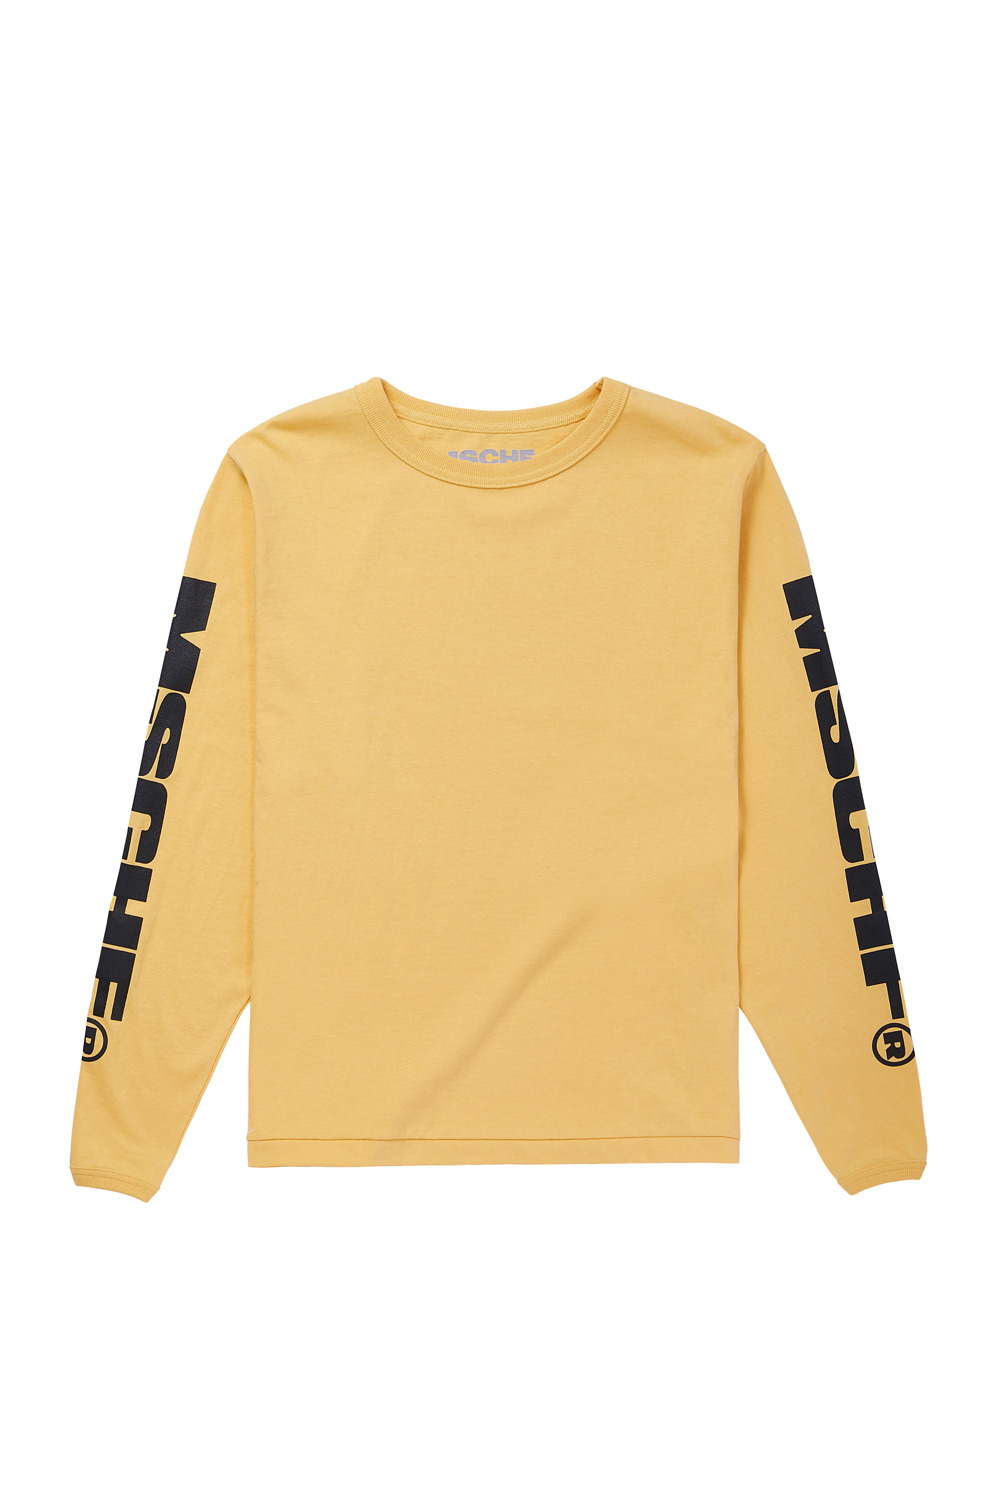 MSCHF LONG SLEEVE_pale yellow